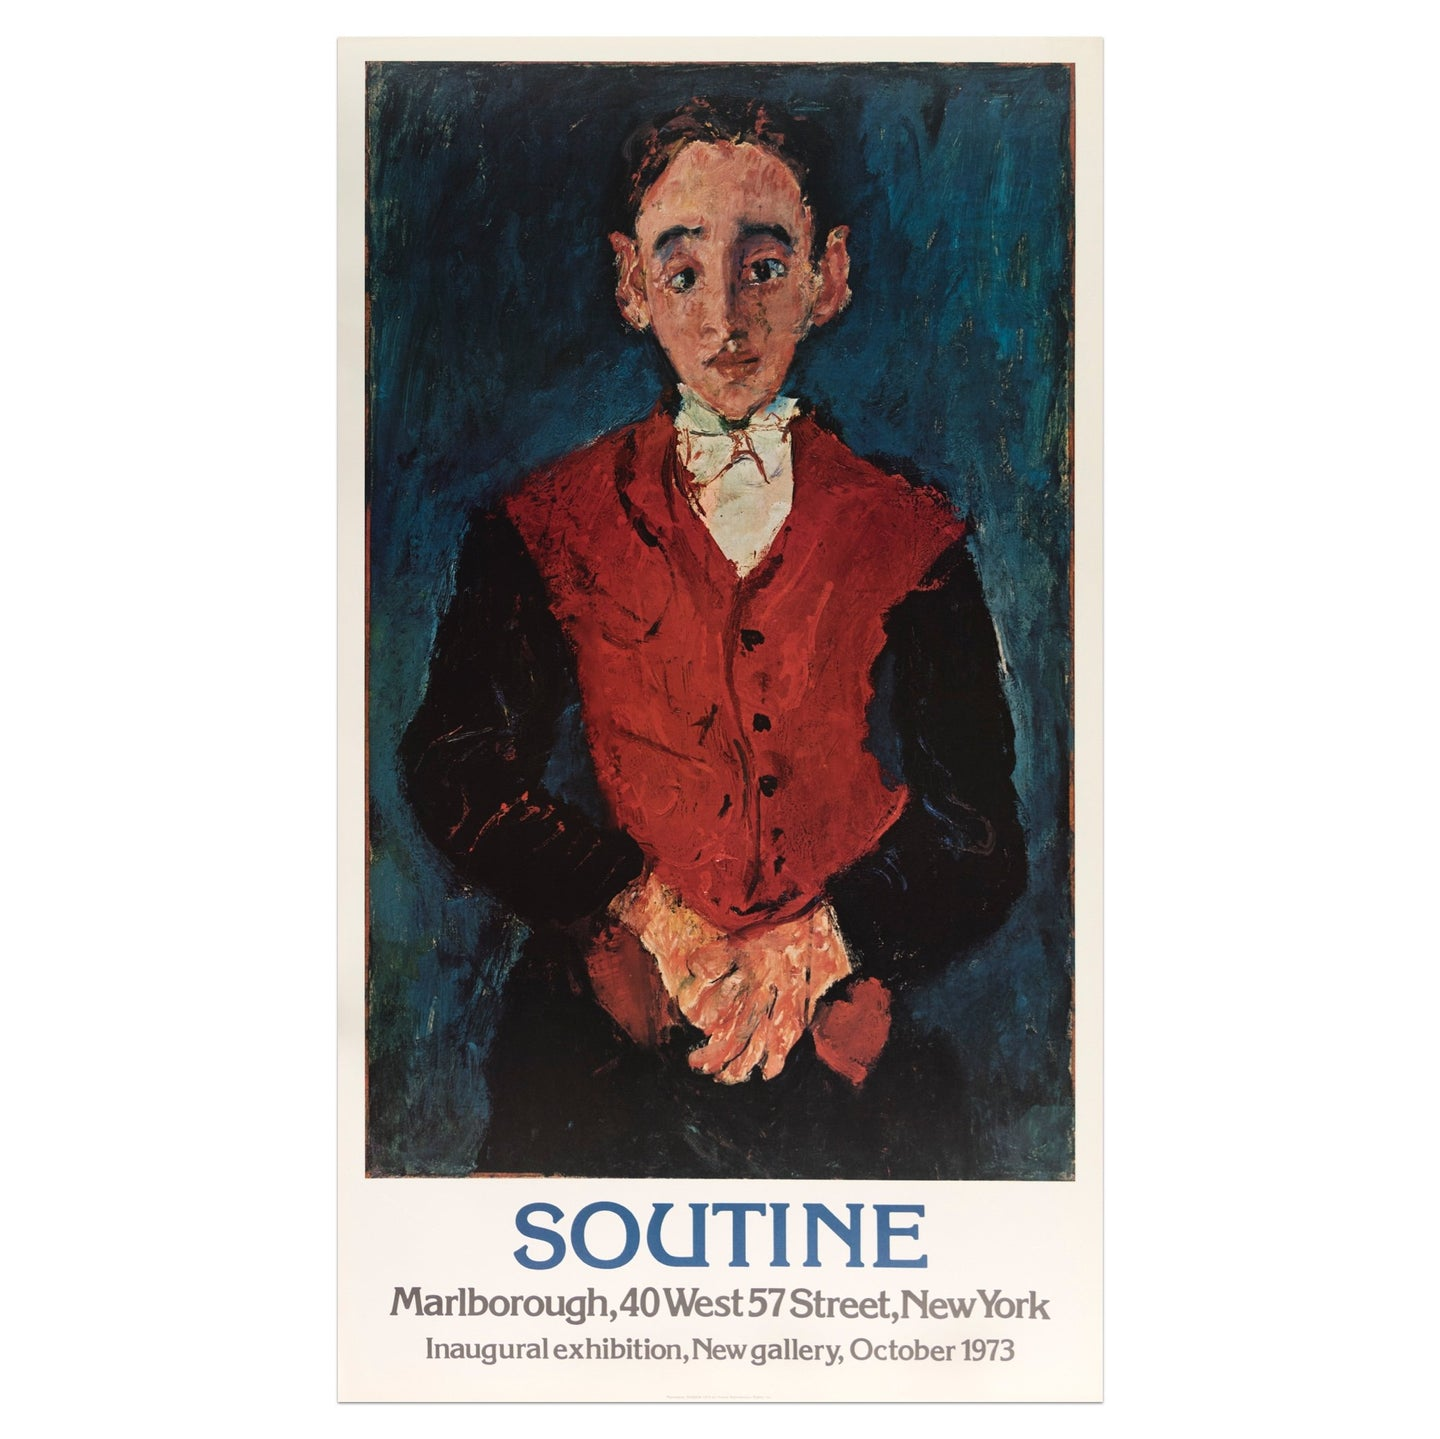 1973 Marlborough New York Chaim Soutine poster of a portrait painting of a male figure dressed in a red vest